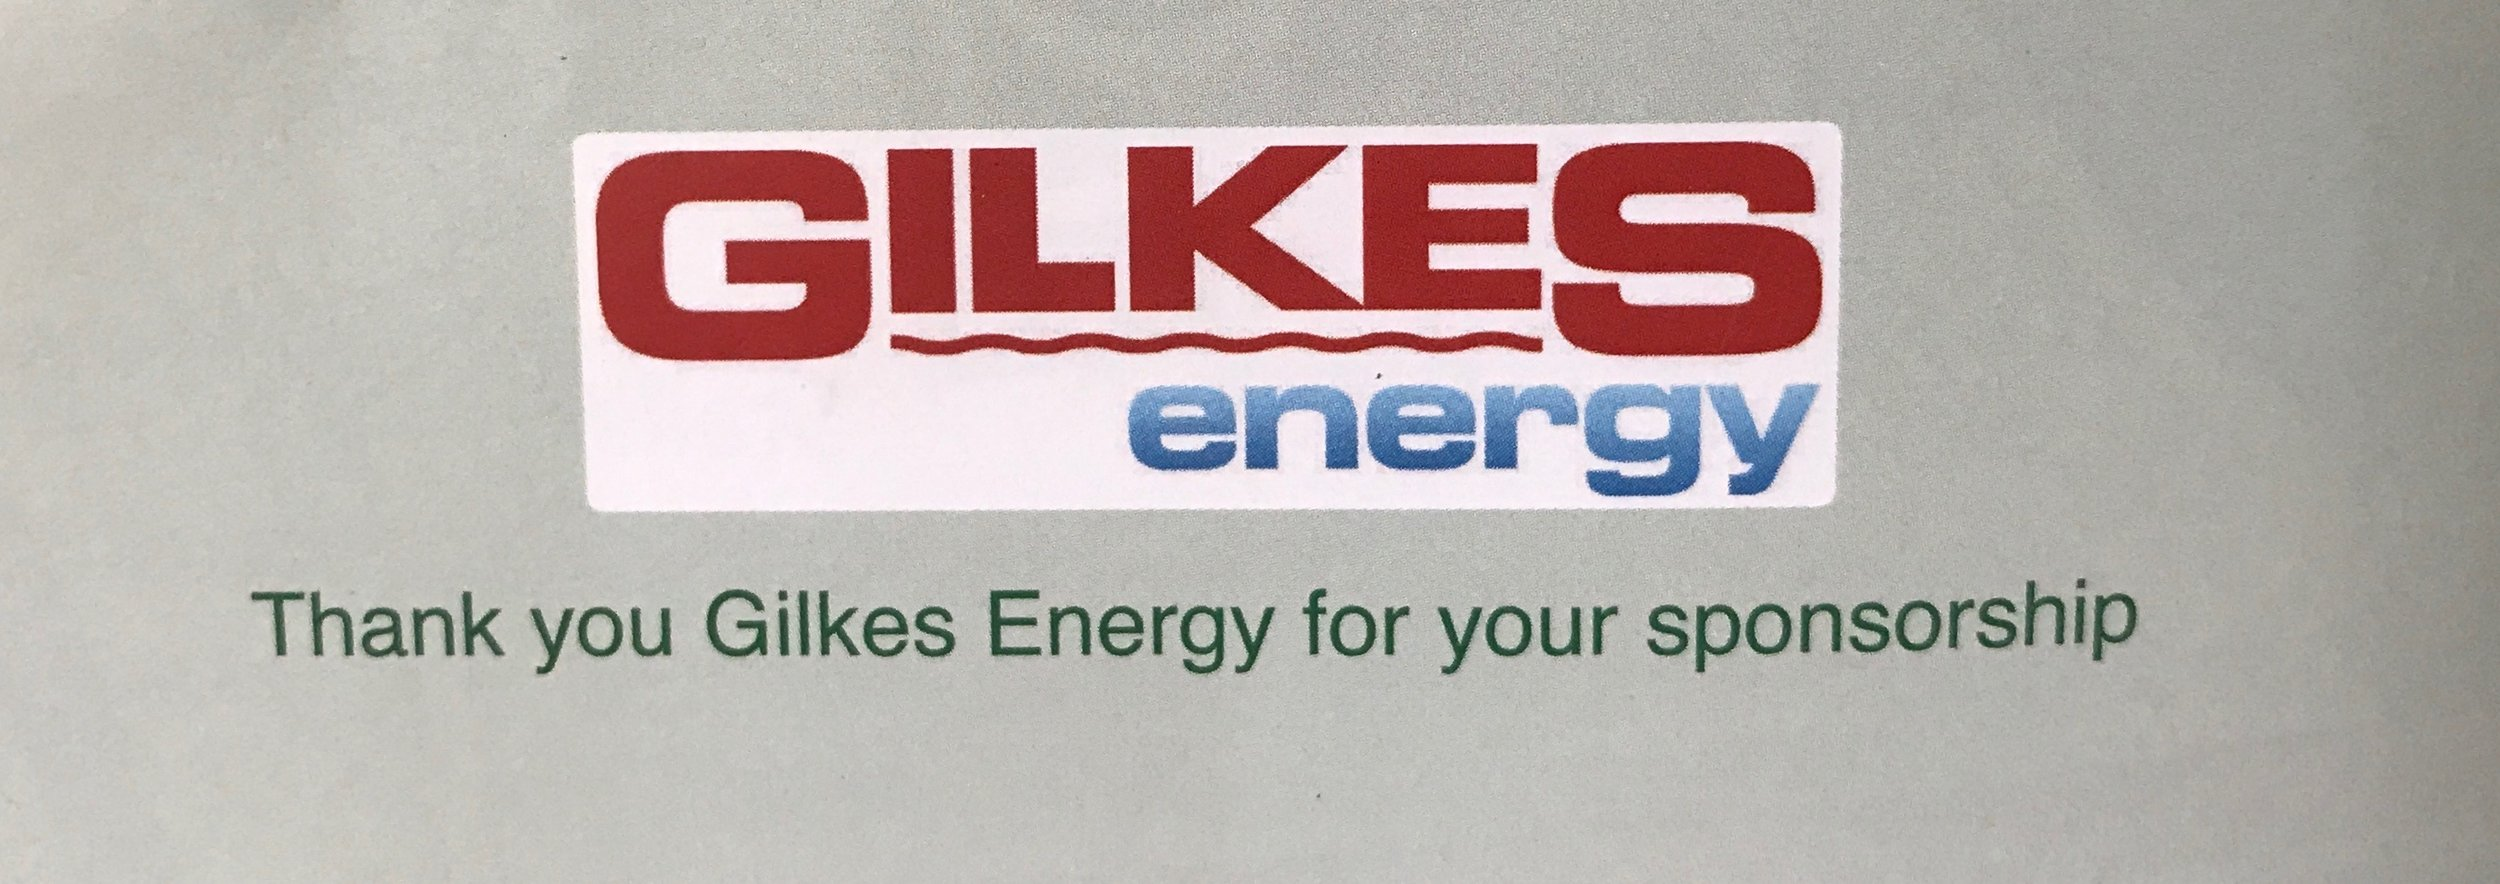 Gilkes Energy are creating 3 hydro electric schemes at @attadaleestate